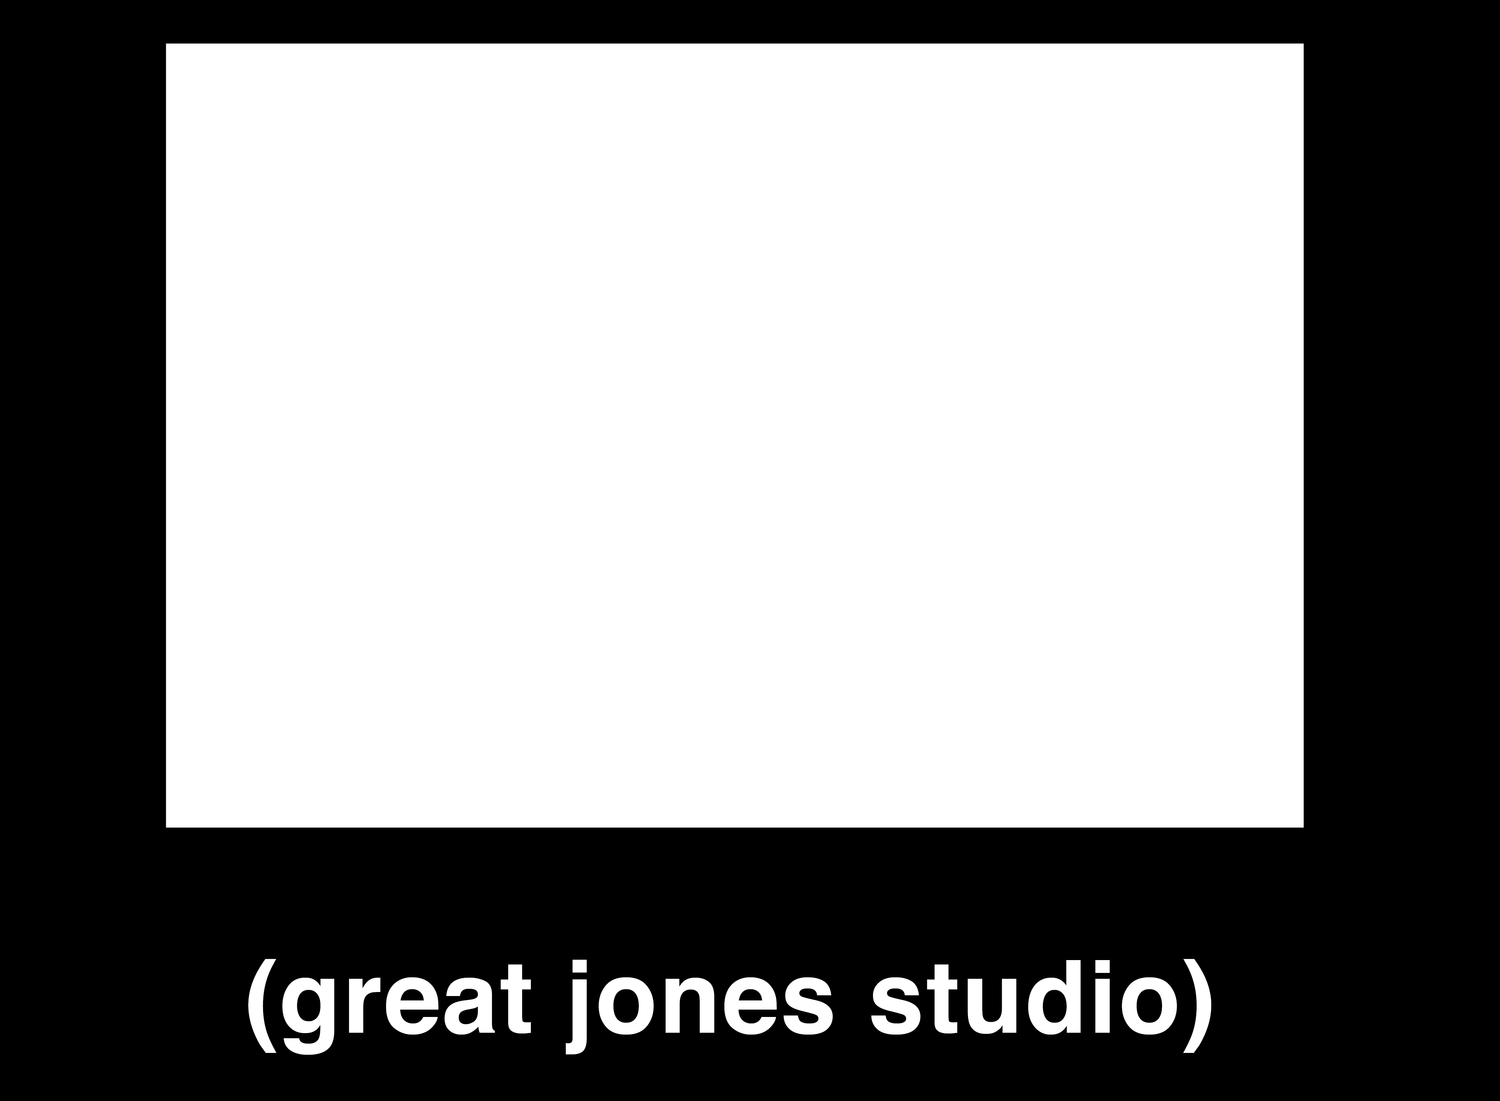 Great Jones Studio